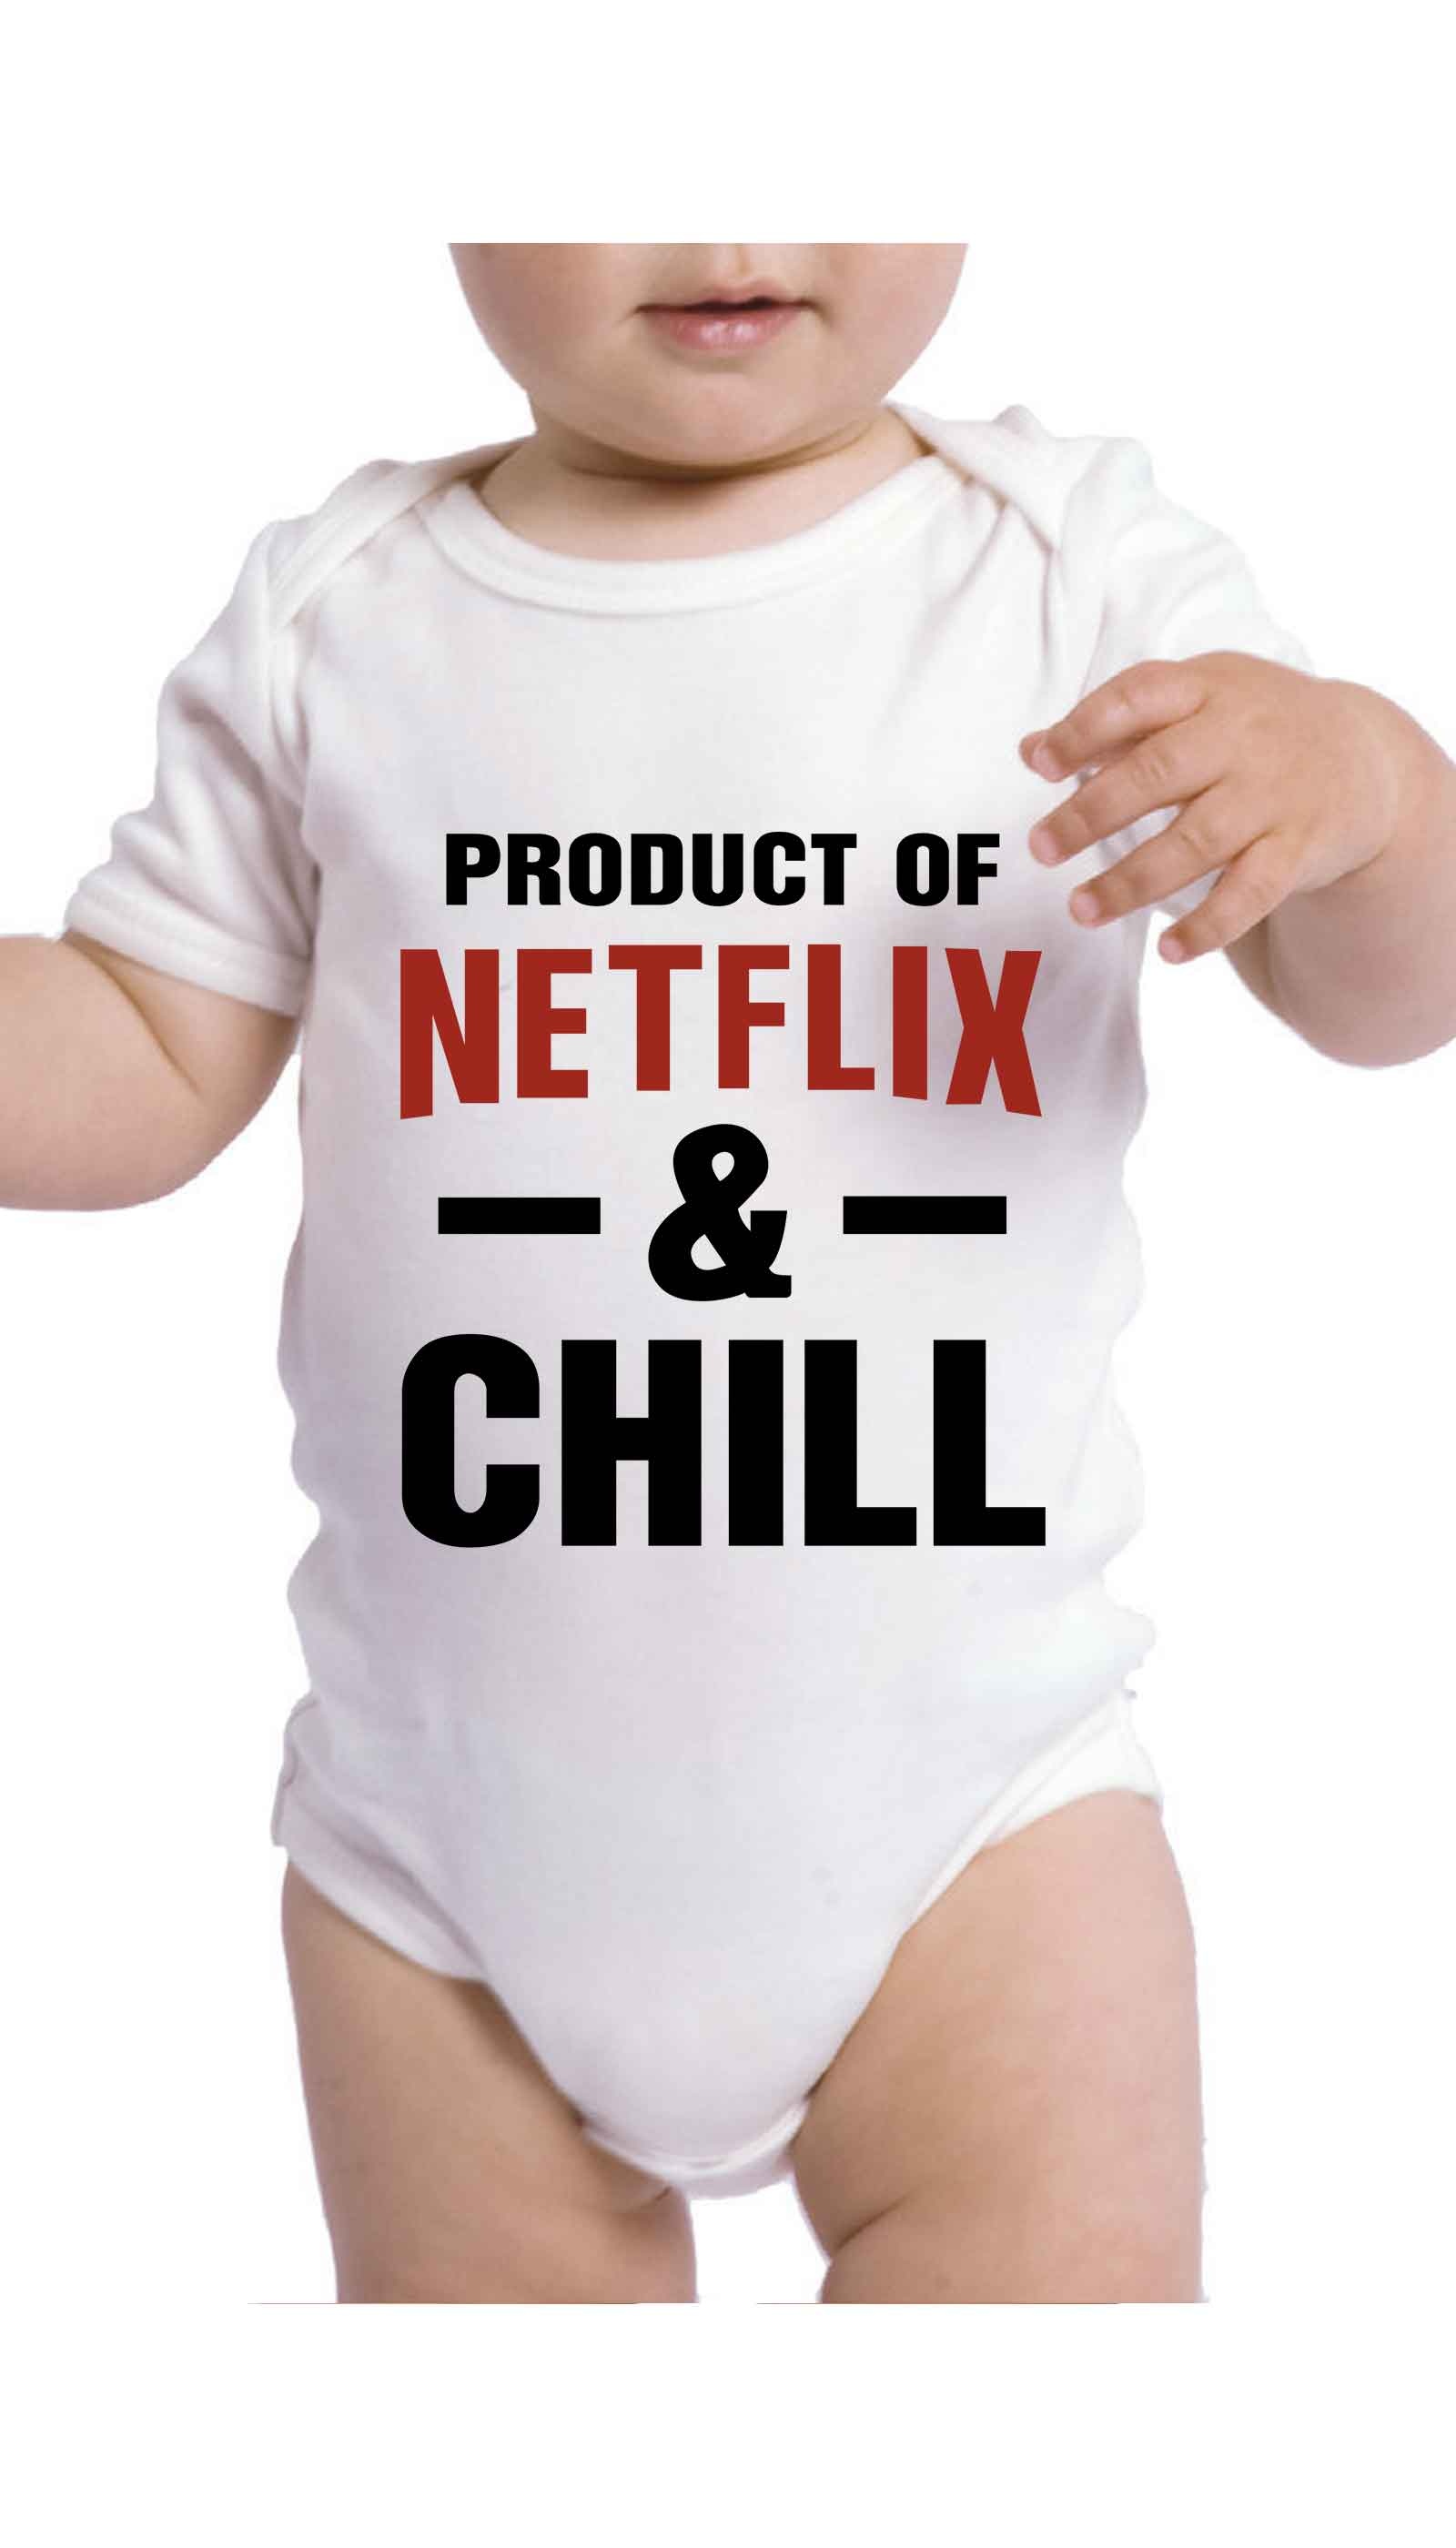 Product Of Netflix & Chill Cute & Funny Baby Infant Onesie | Sarcastic ME